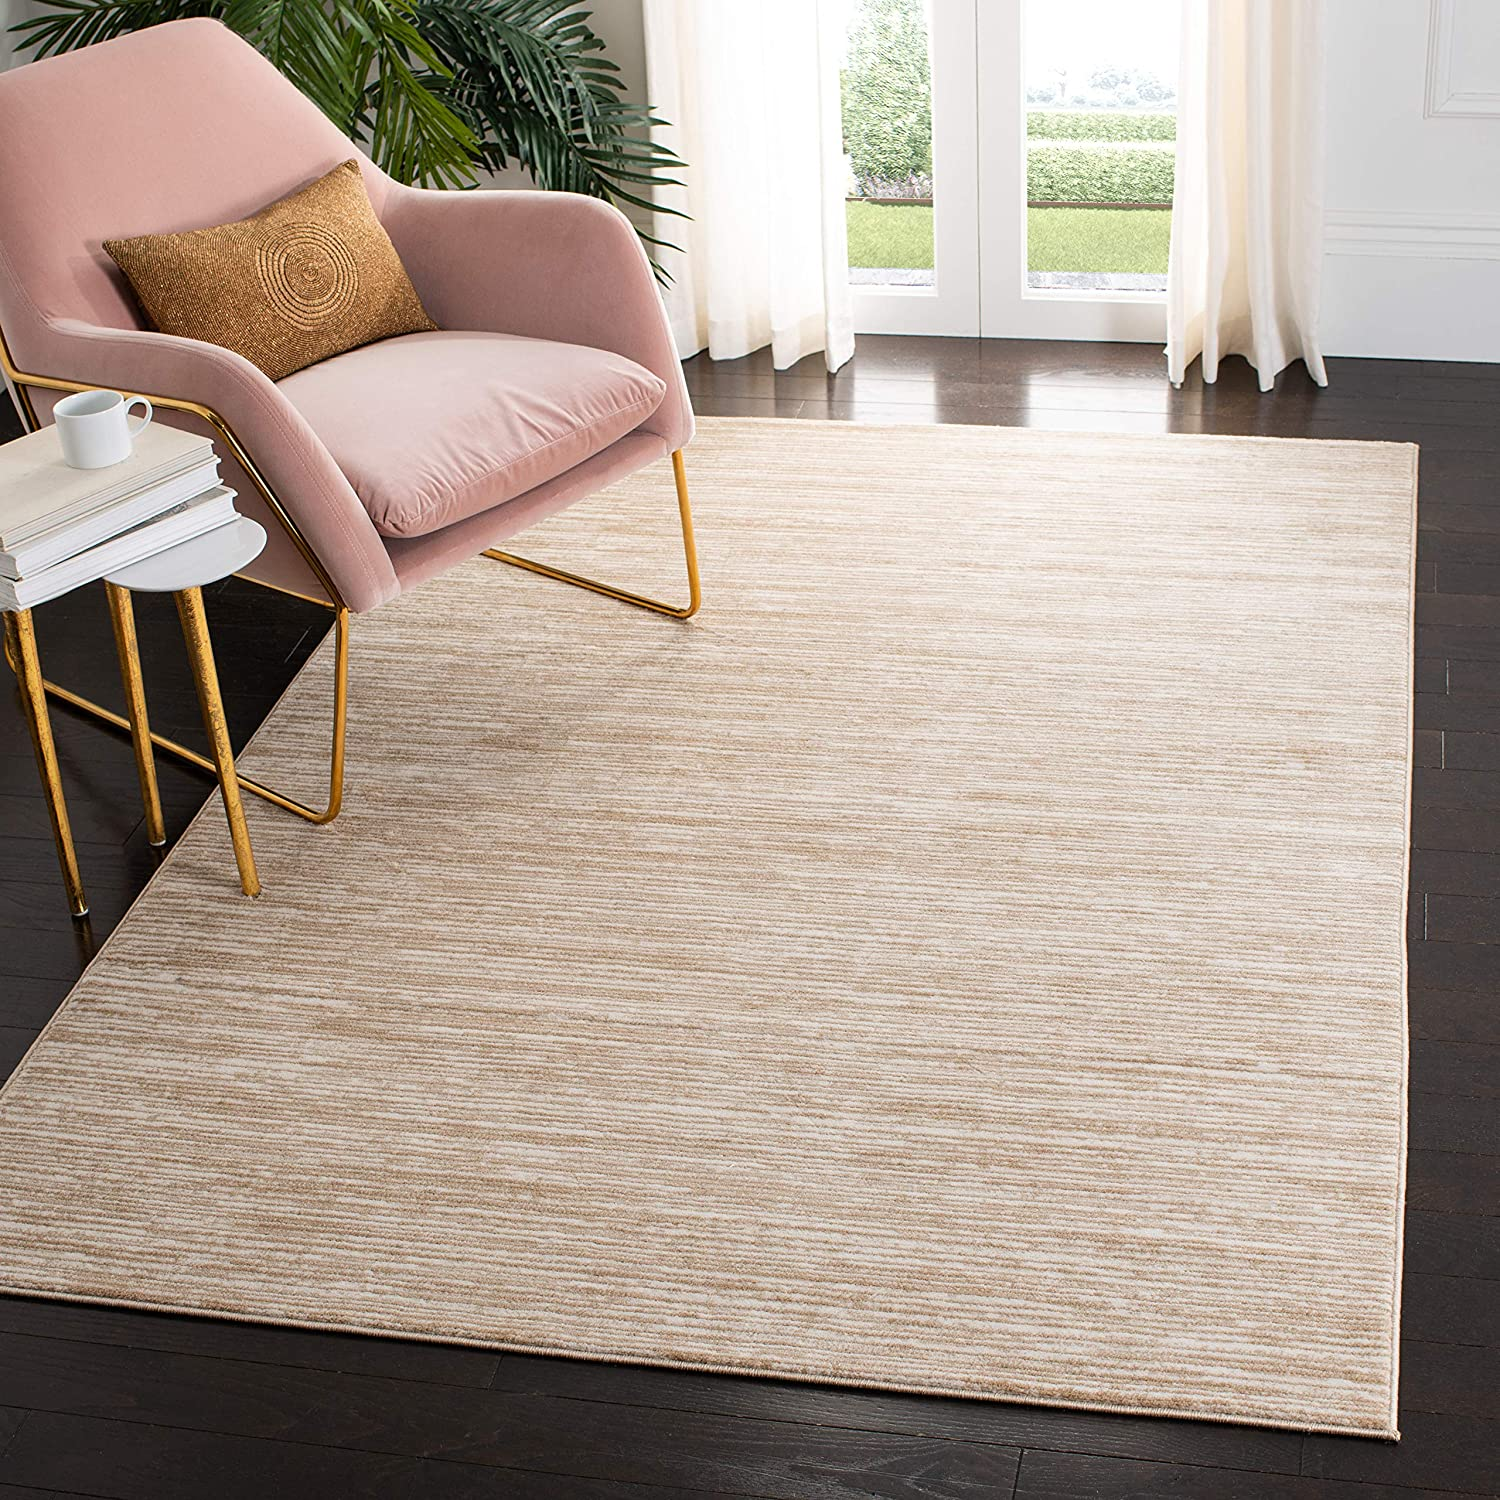 Safavieh Vision Collection VSN606F Modern Contemporary Ombre Tonal Chic Area Rug, 2' 2